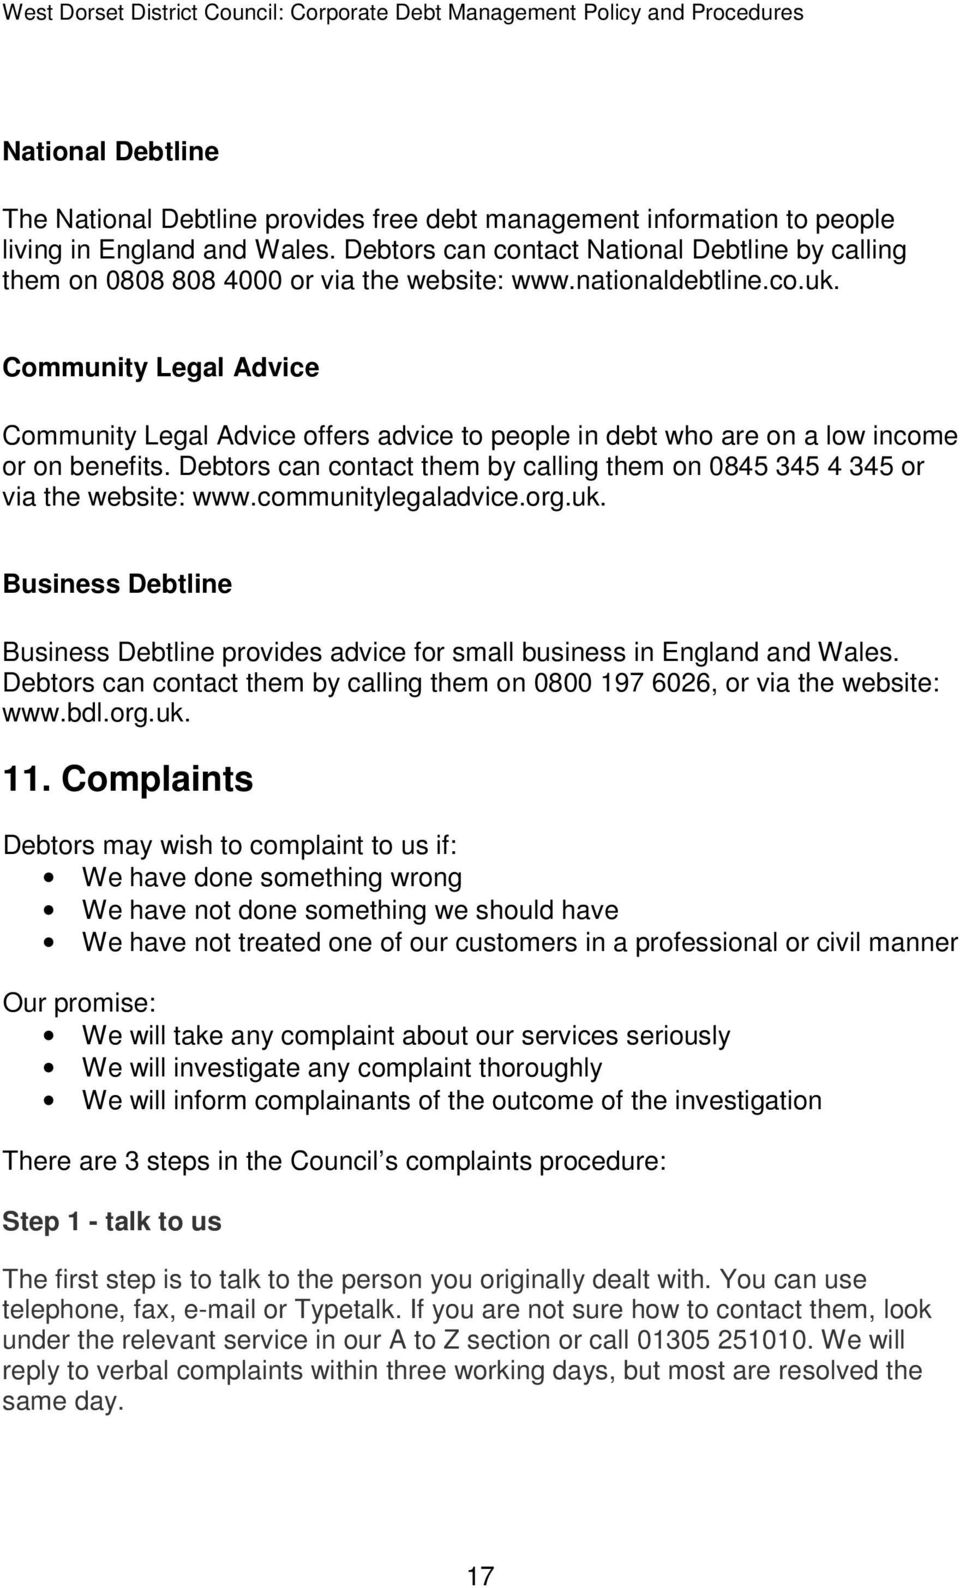 Community Legal Advice Community Legal Advice offers advice to people in debt who are on a low income or on benefits.